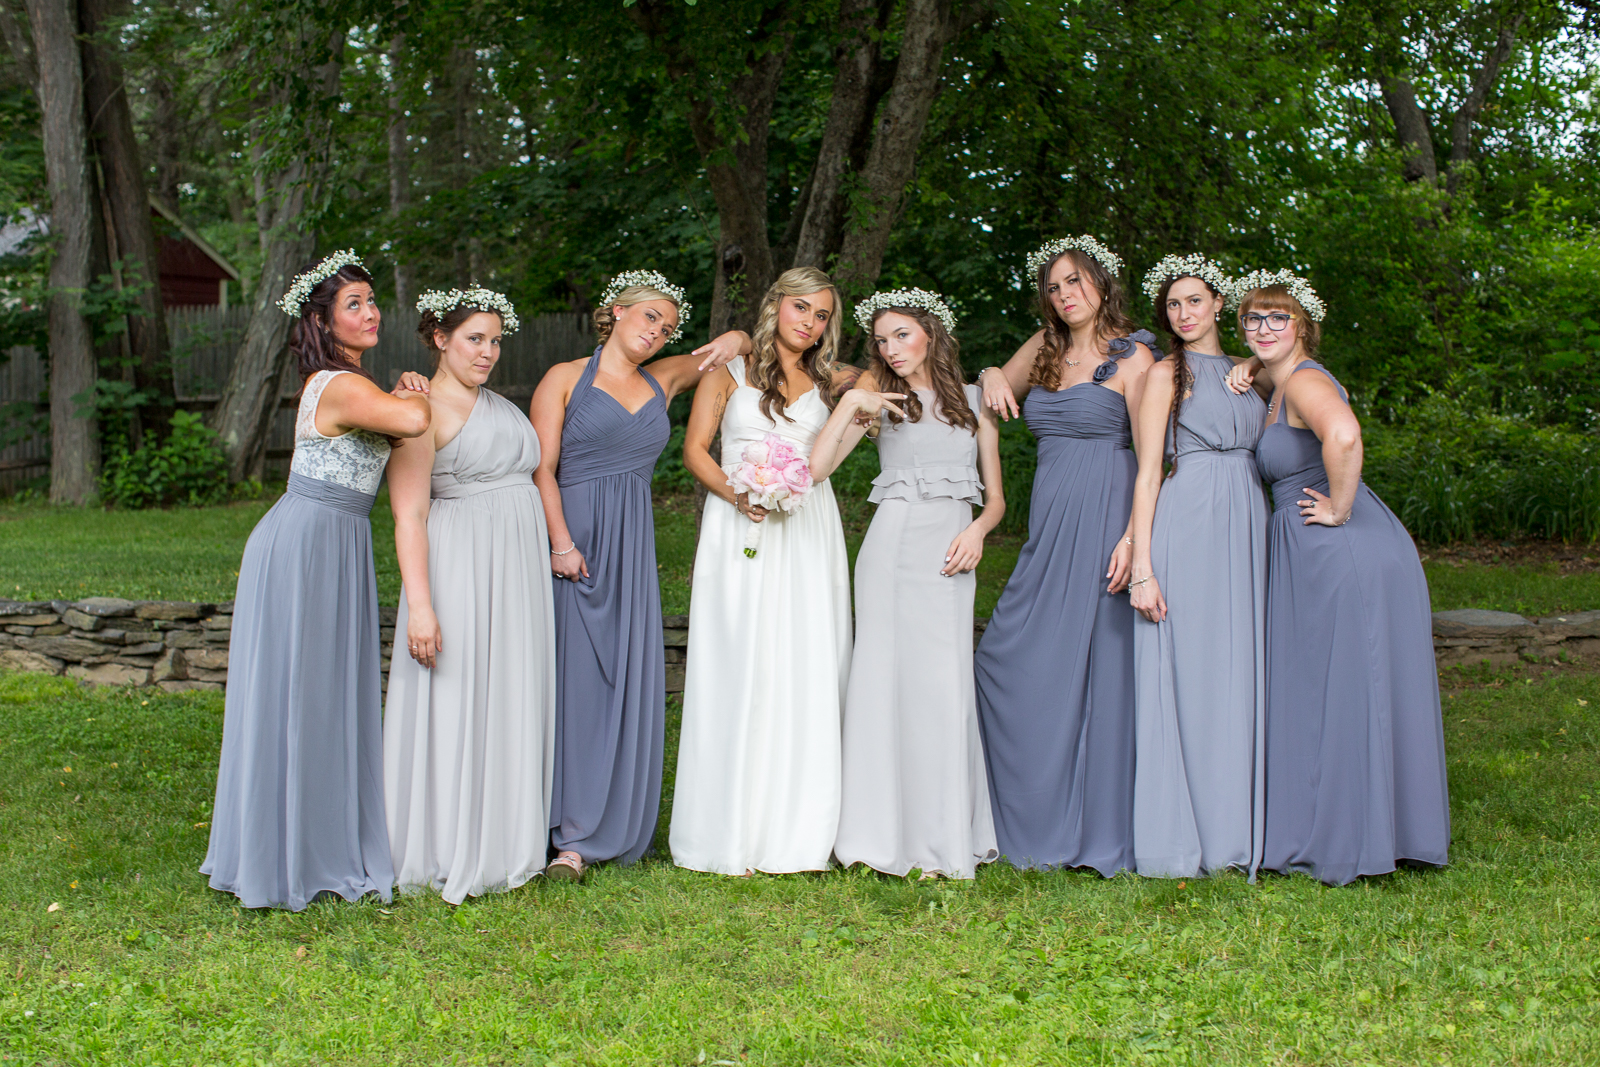 Four_Wings_Photography_Wedding_Red_Barn_at_Hampshire_College-13.jpg